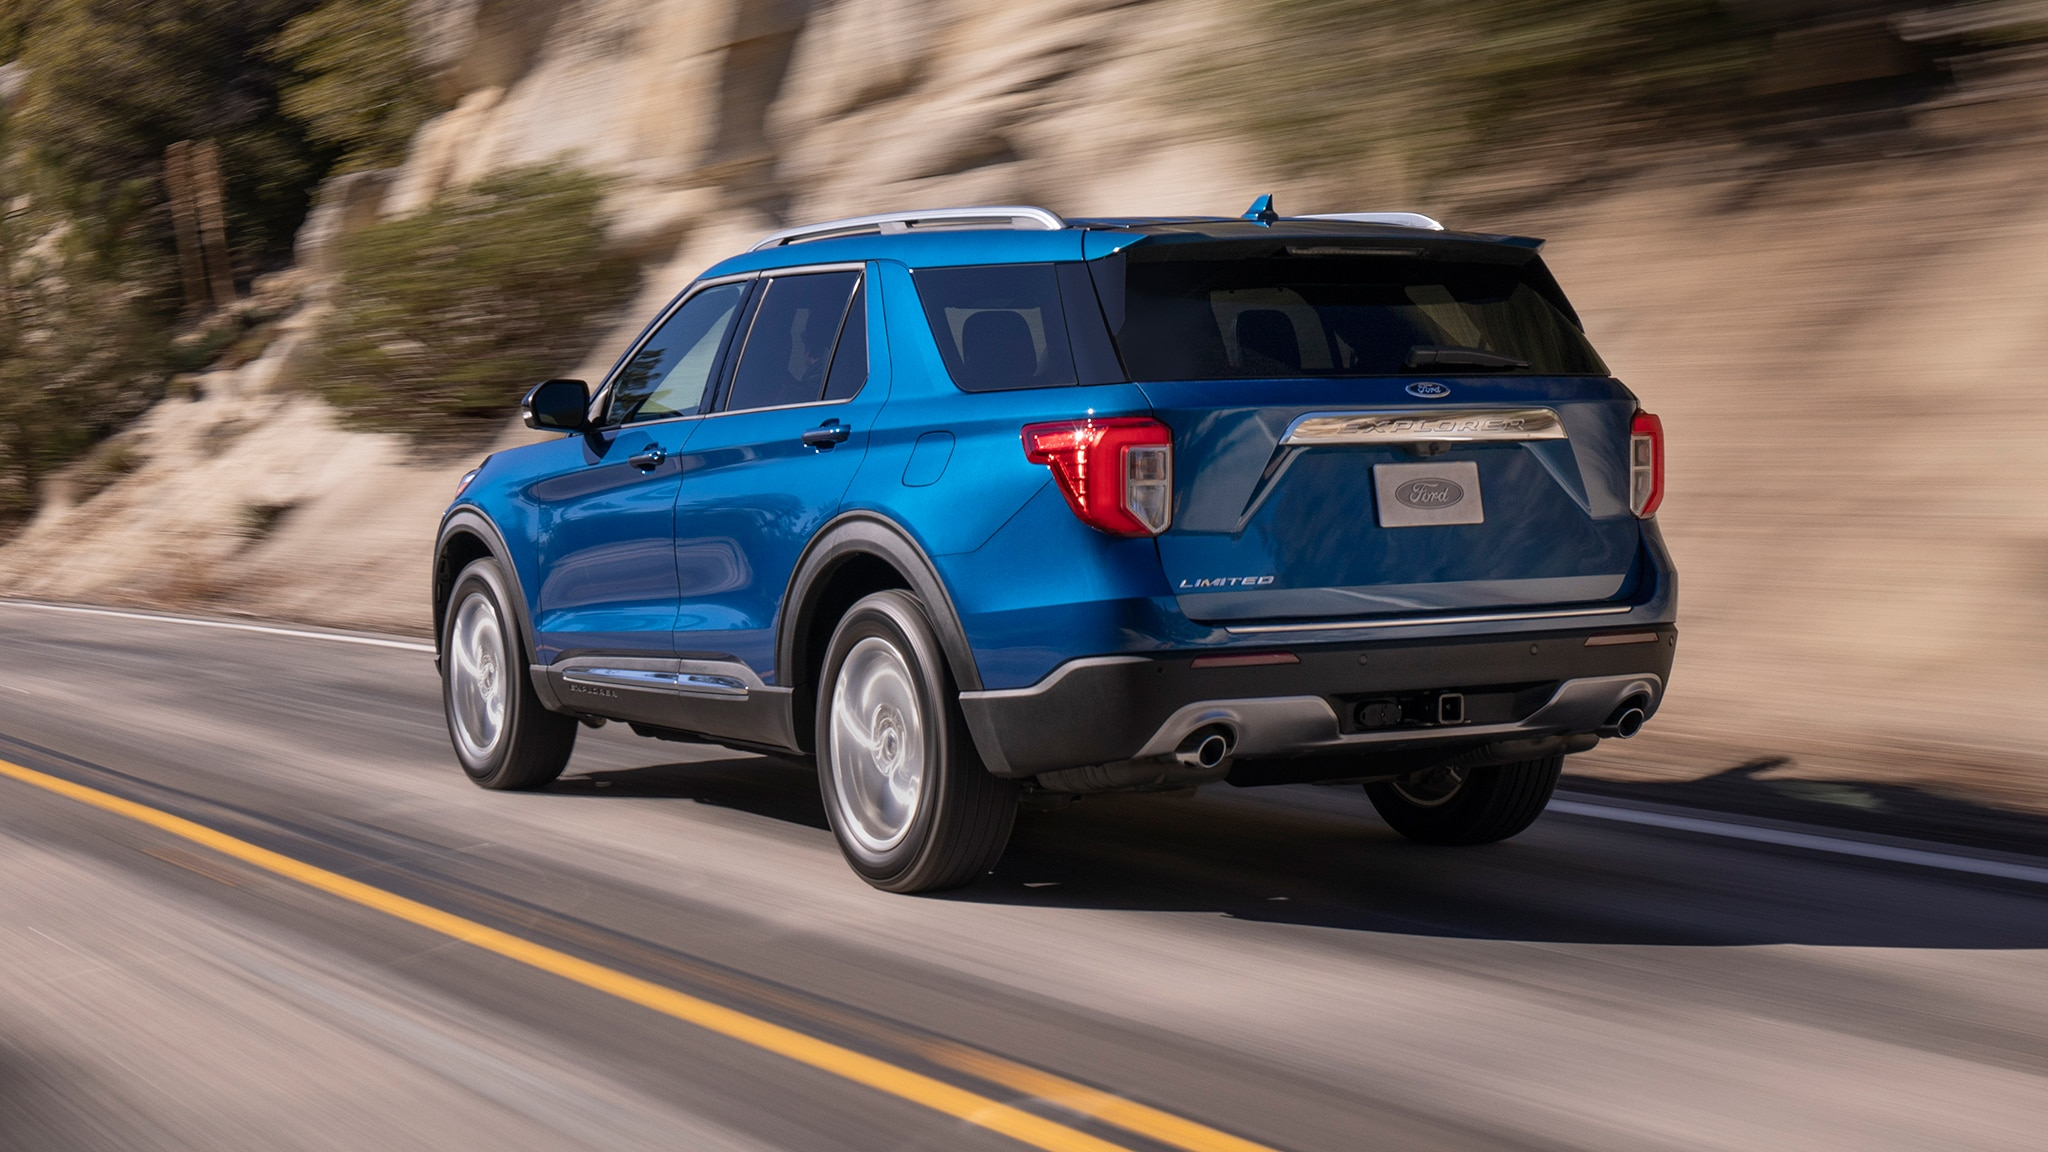 Ford unveils revamped Explorer ahead of Detroit auto show